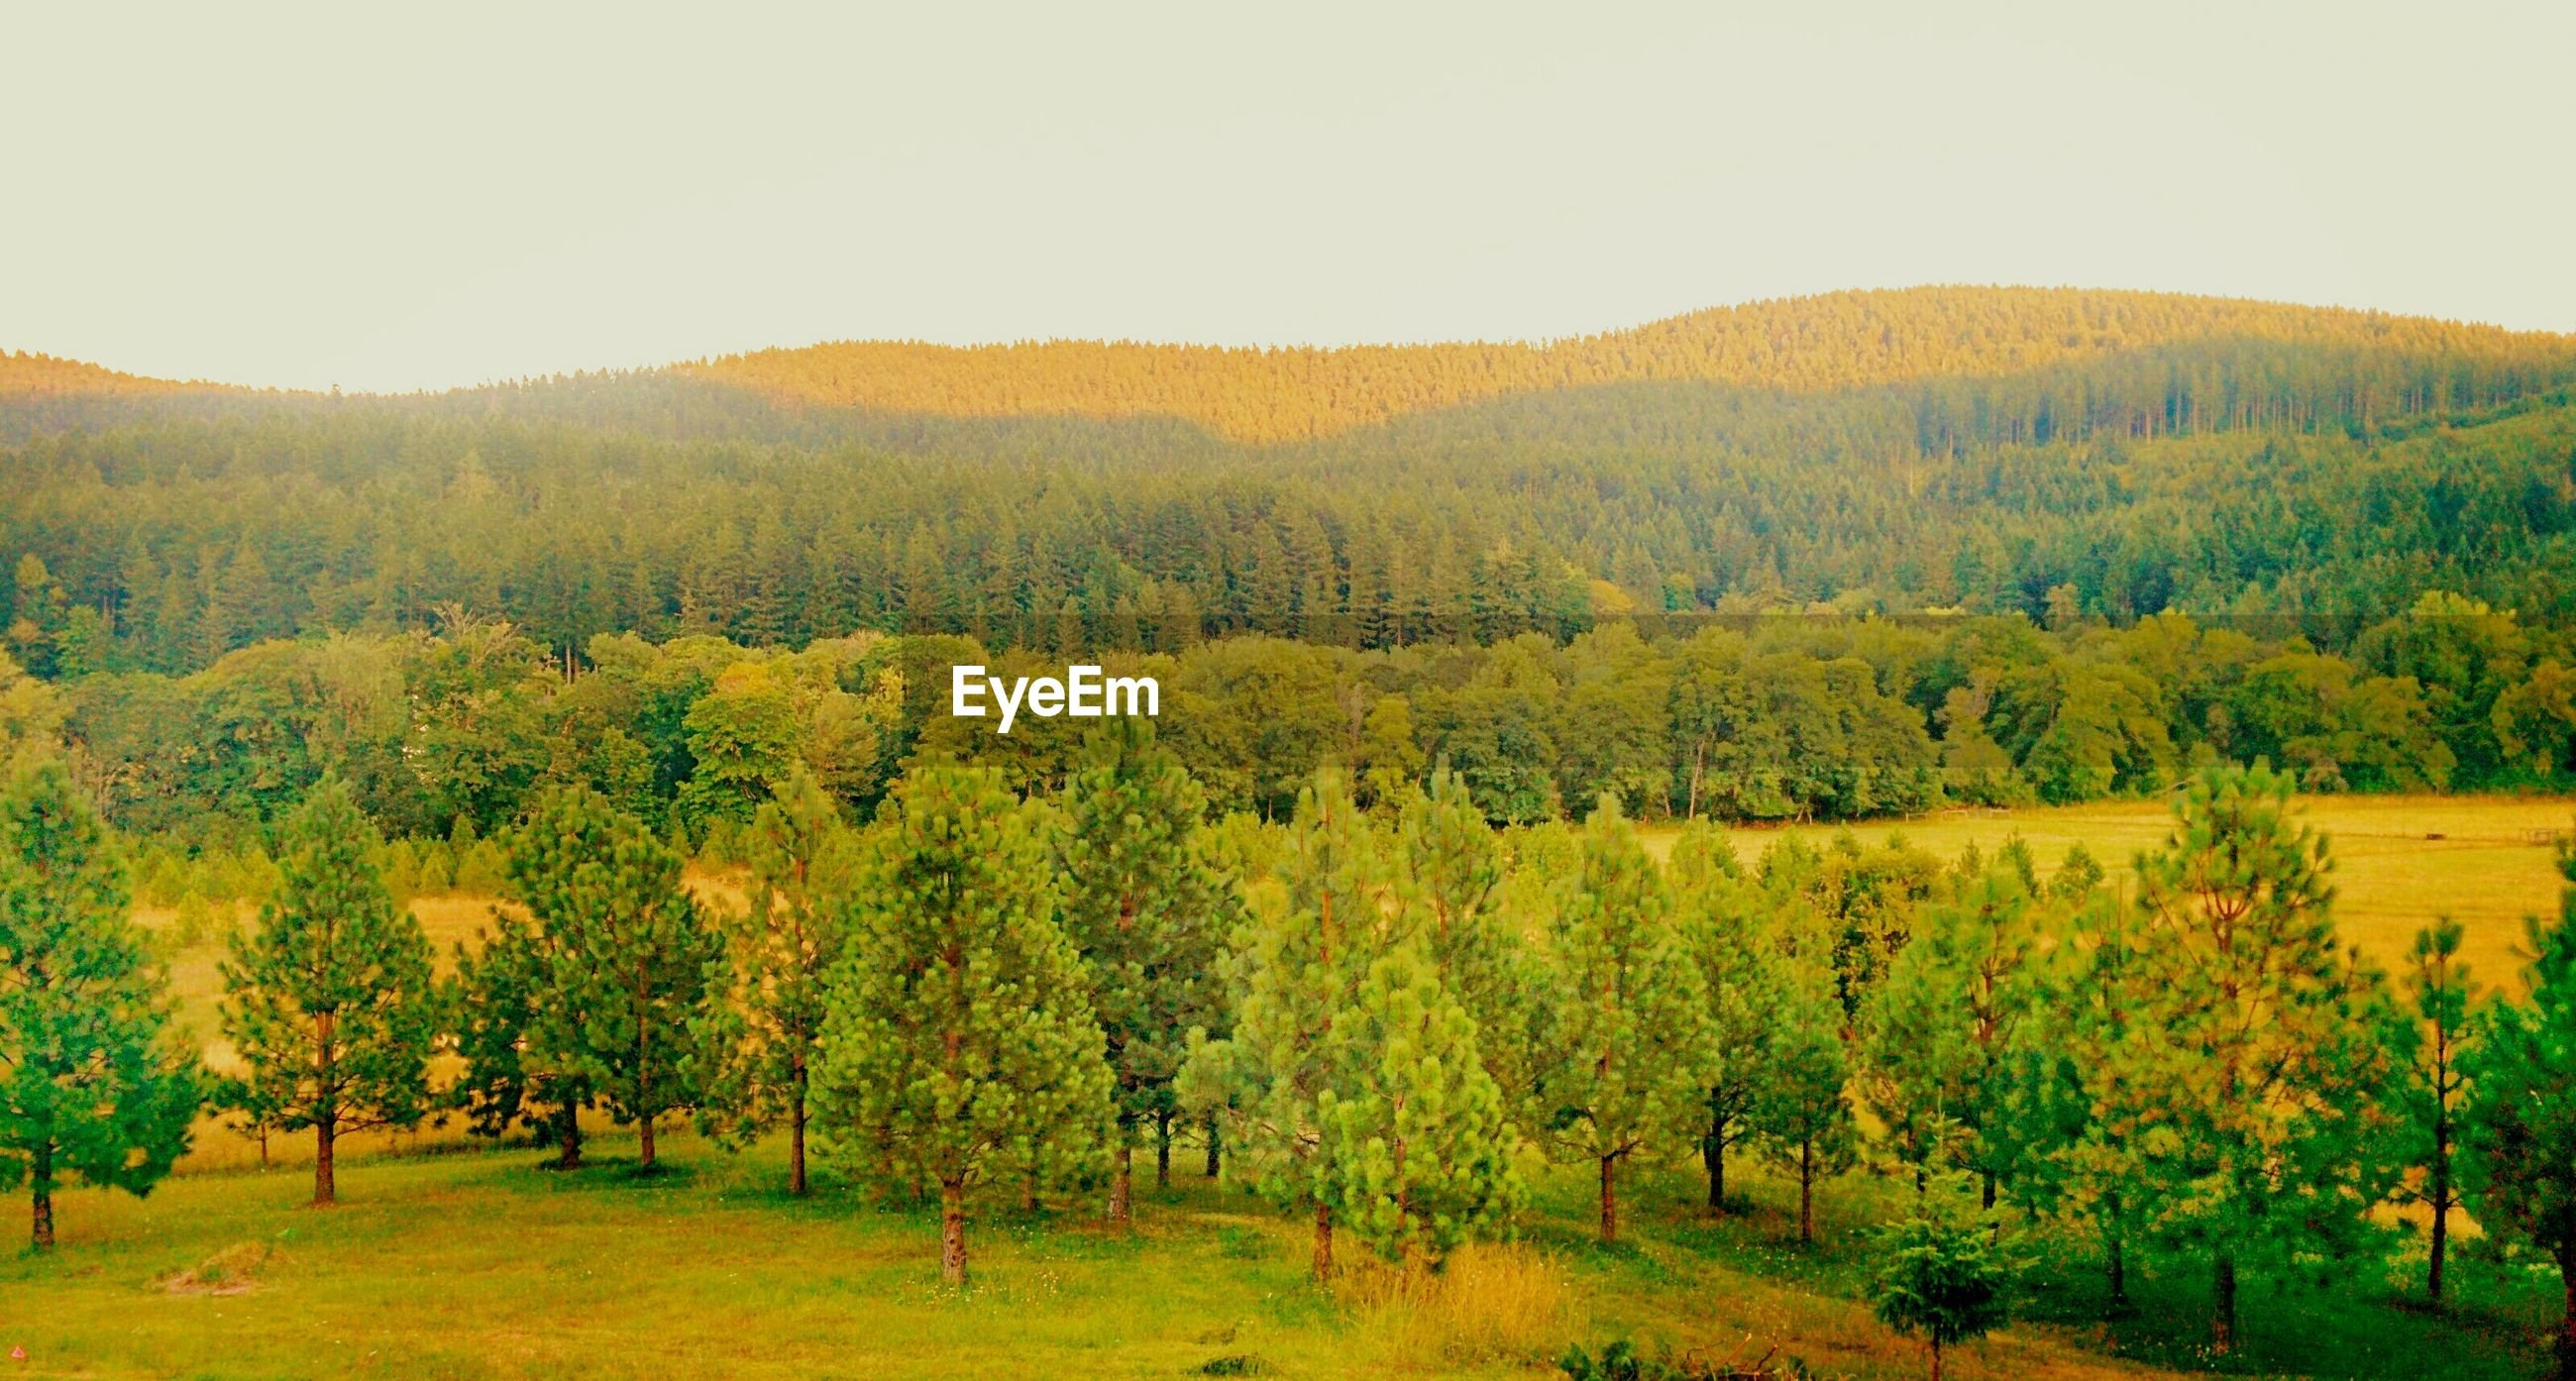 SCENIC VIEW OF LANDSCAPE WITH TREES IN BACKGROUND